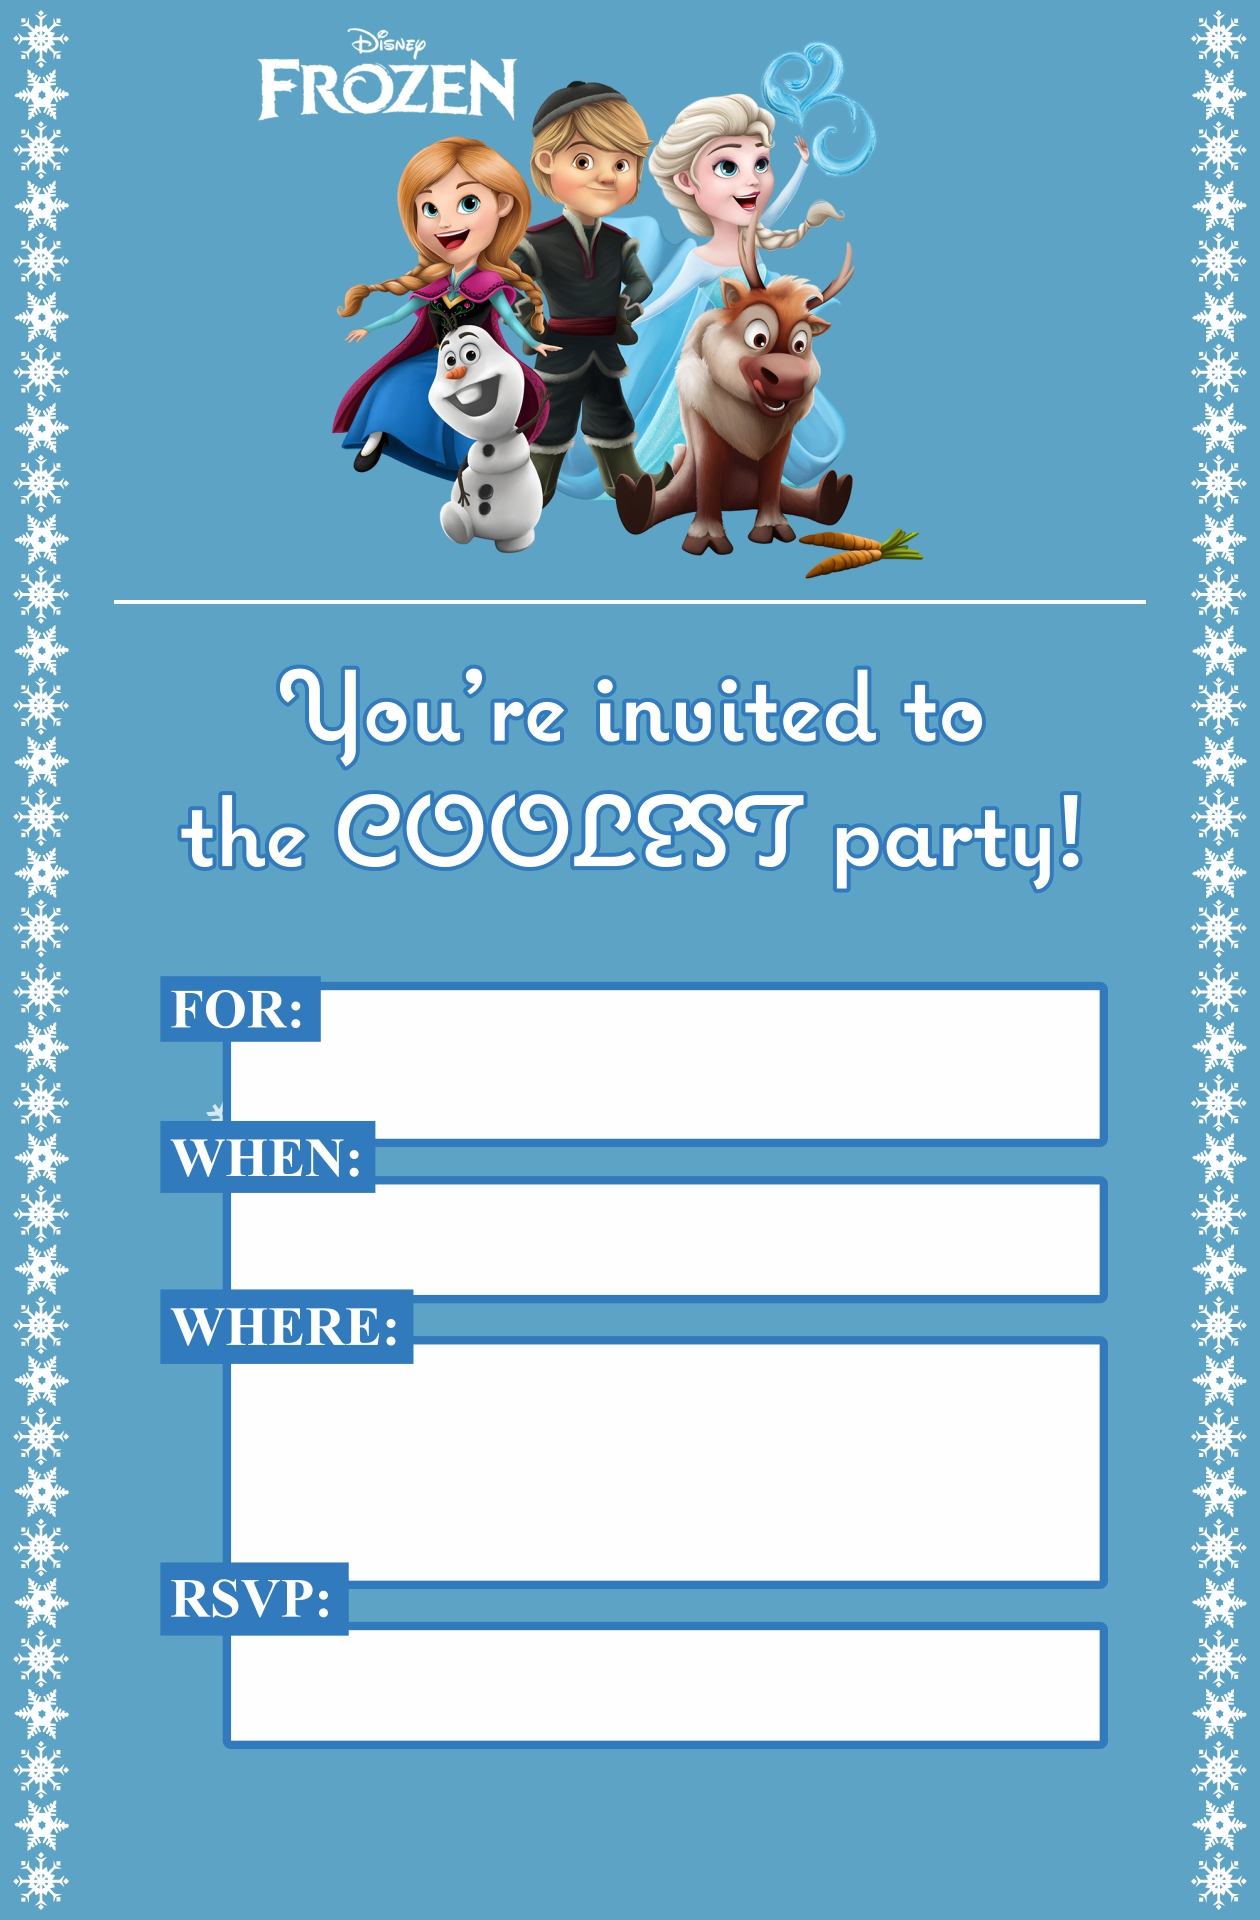 Frozen Birthday Invitation Template for your inspiration to make invitation template look beautiful